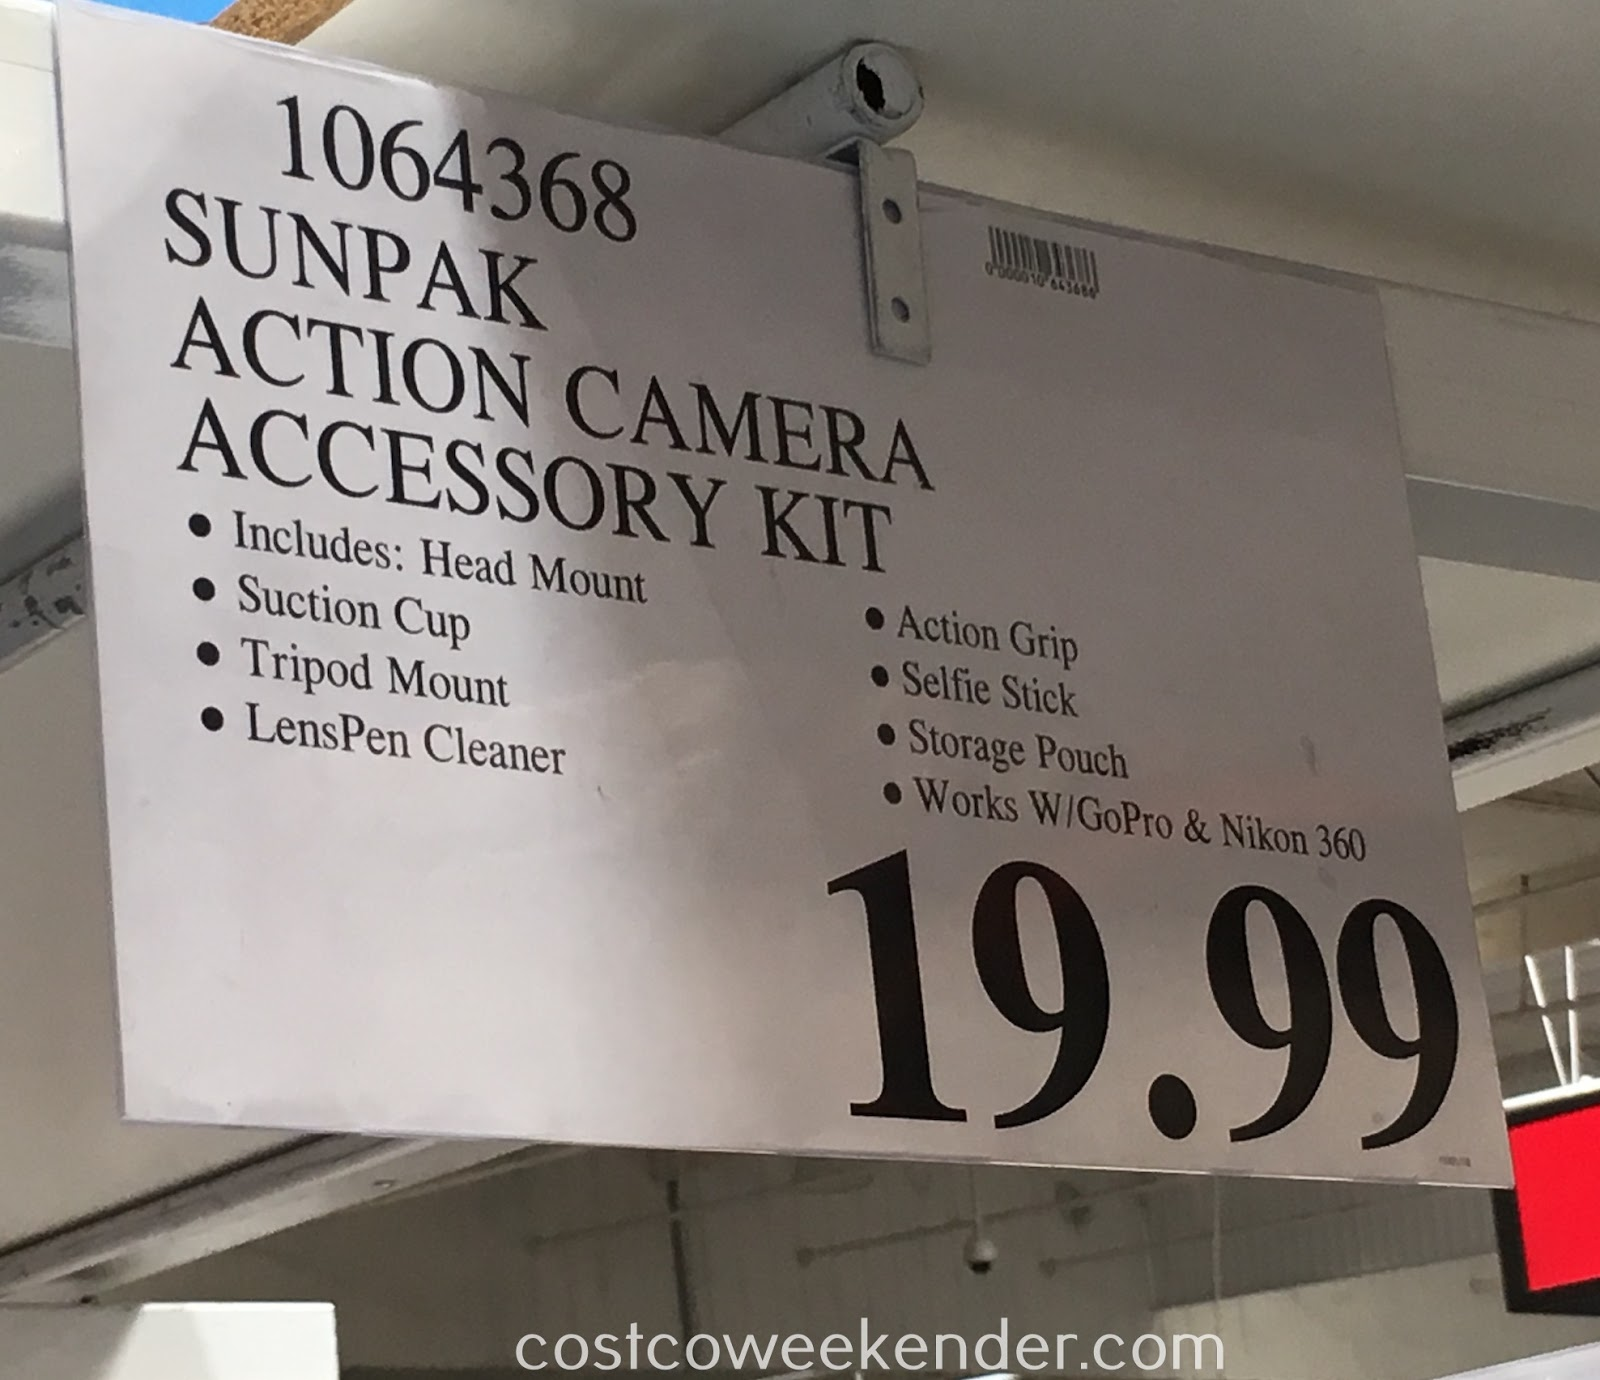 Deal for the Sunpak Action Camera Accessory Kit at Costco